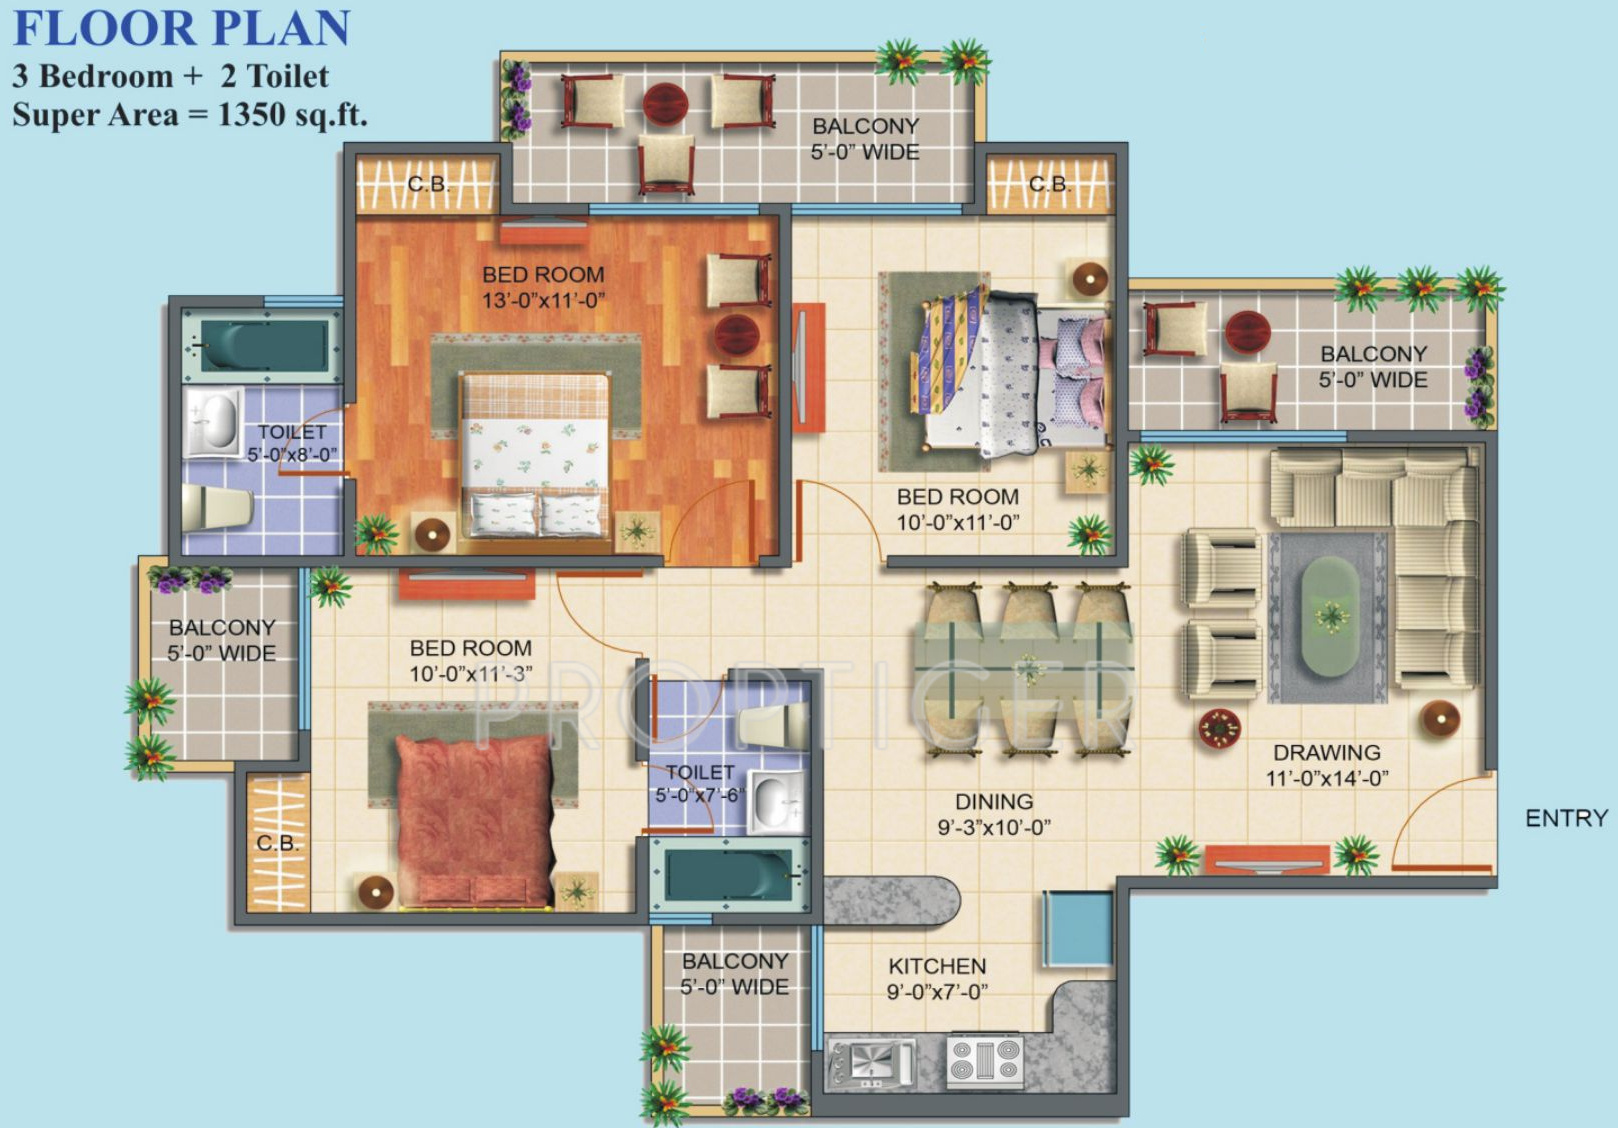 Maxblis white house ii in sector 75 noida price for 1350 sq ft house plan